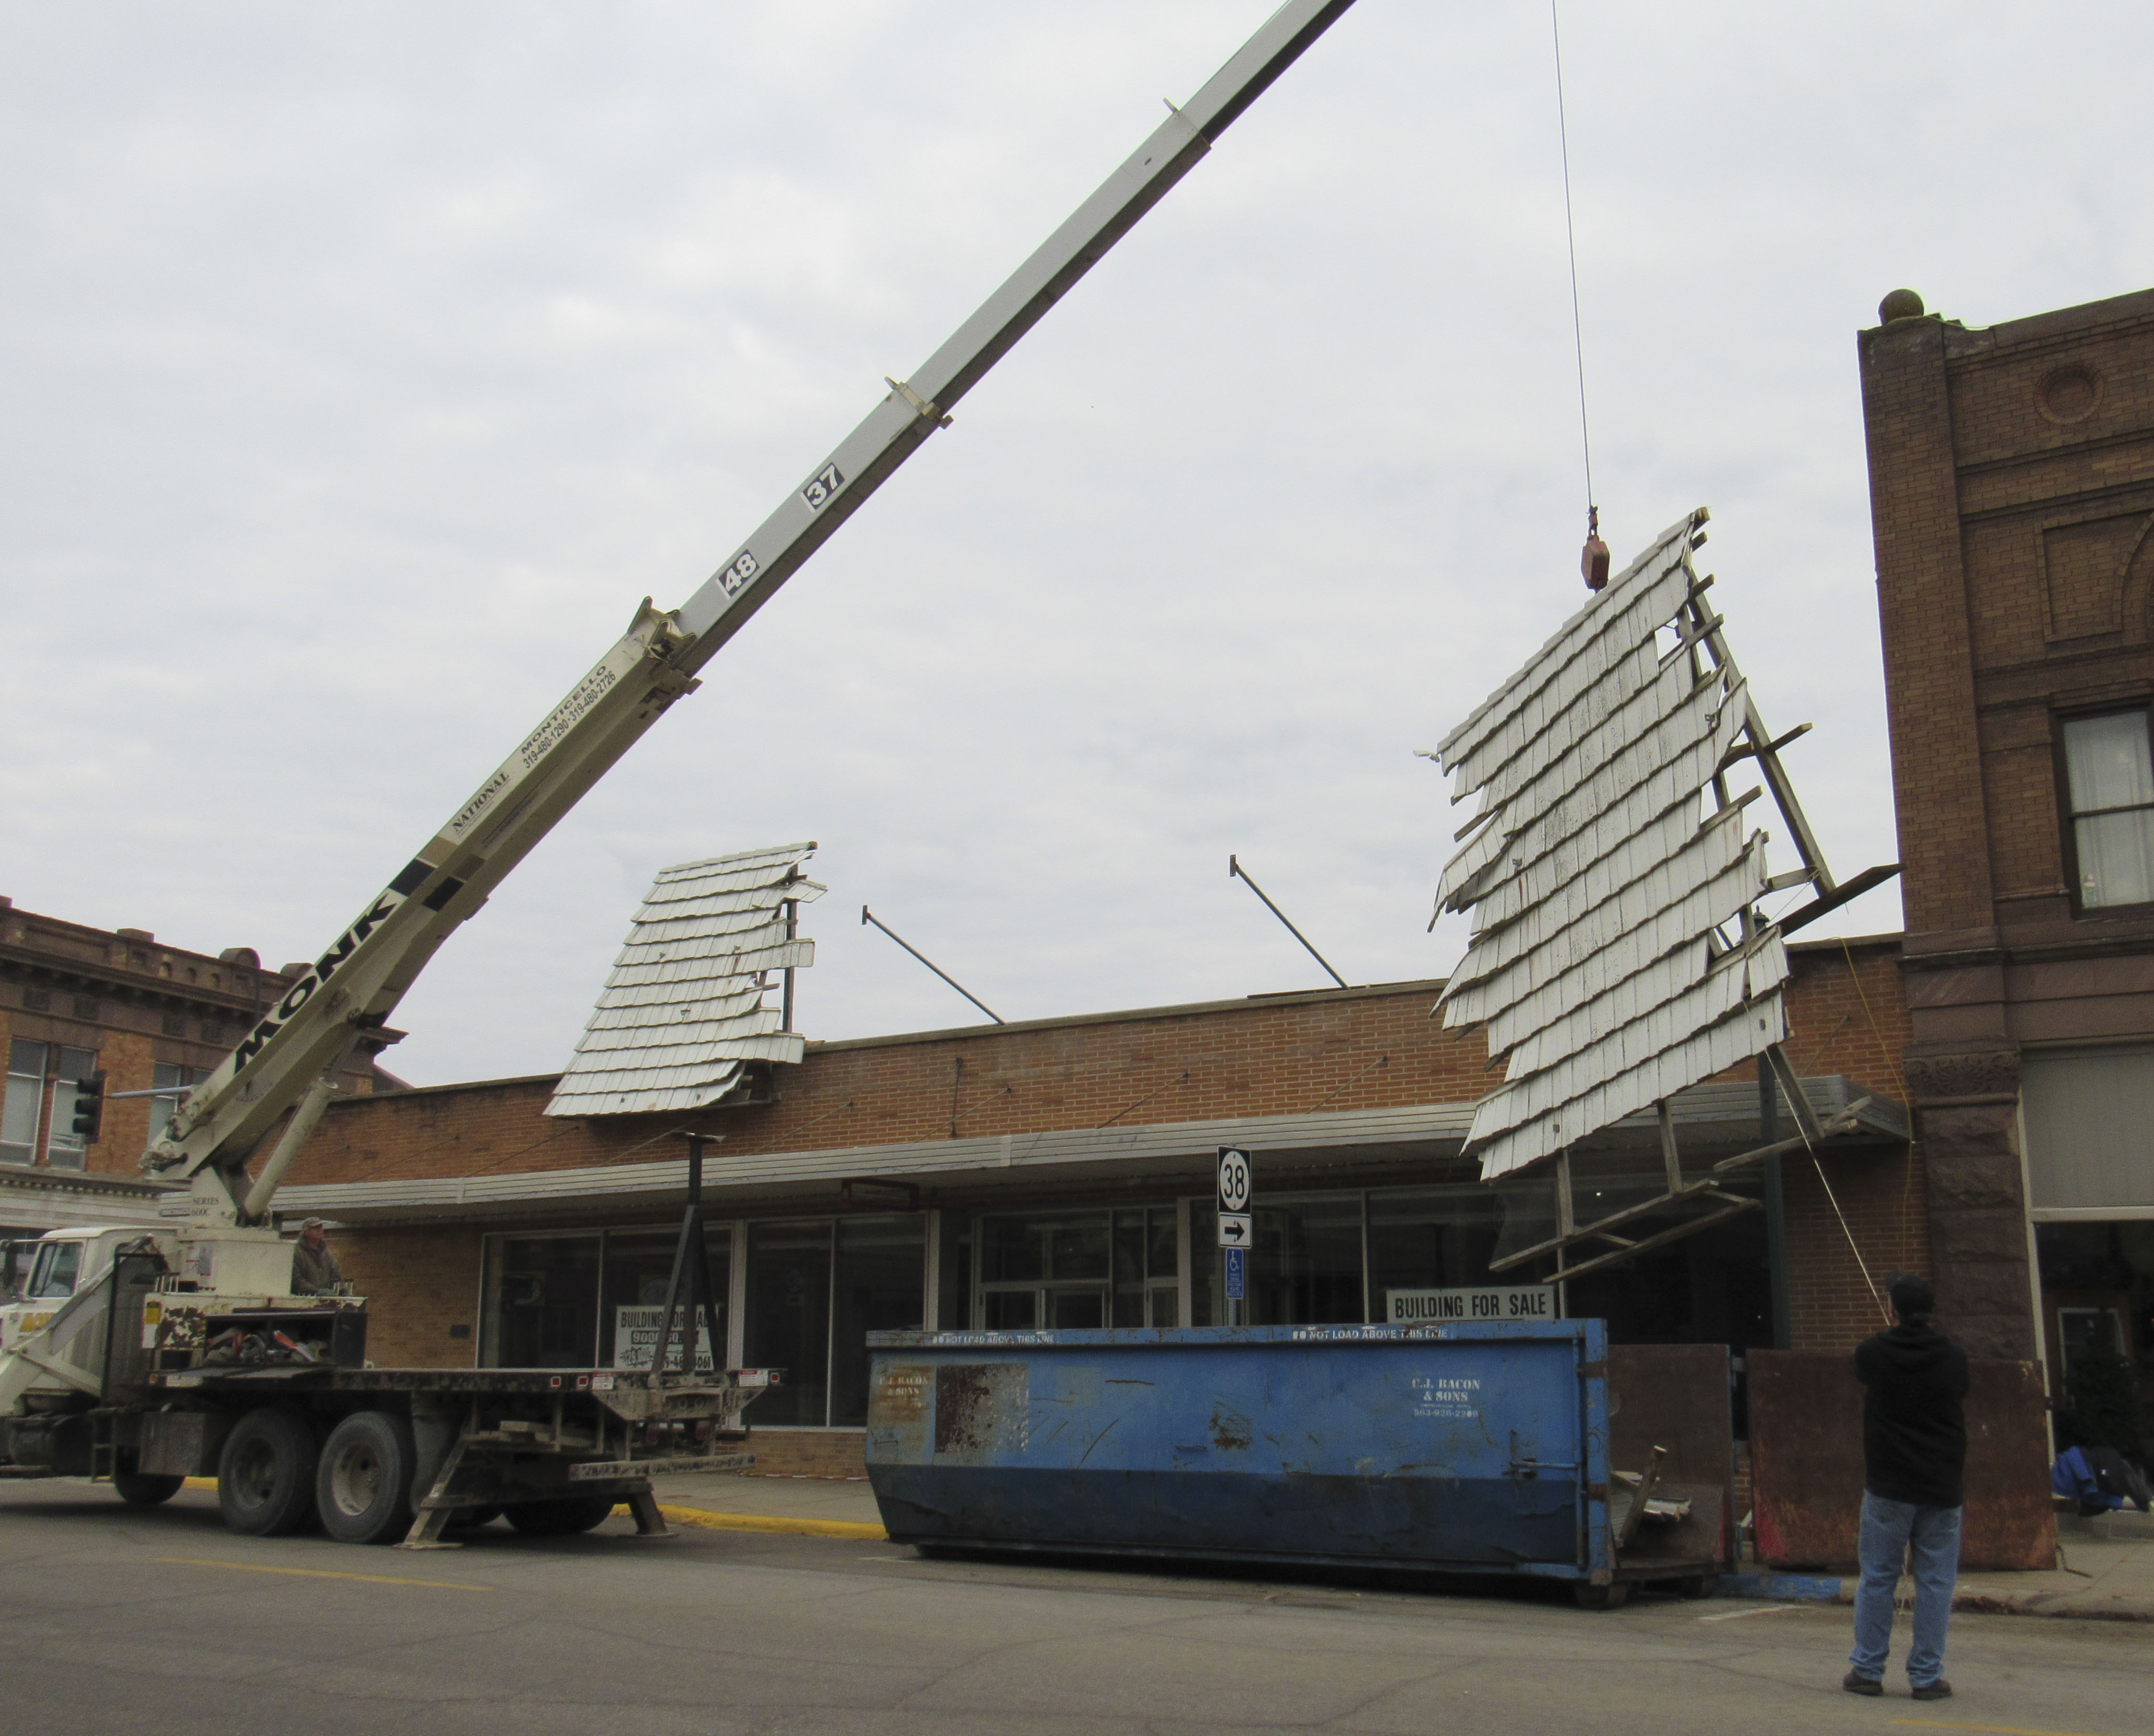 Welter Storage employees were assisted by Monk Construction last week as they tore down the old façade and spruced up the former Dollar General building on E. First Street. The building still remains for sale. (Photo by Kim Brooks)